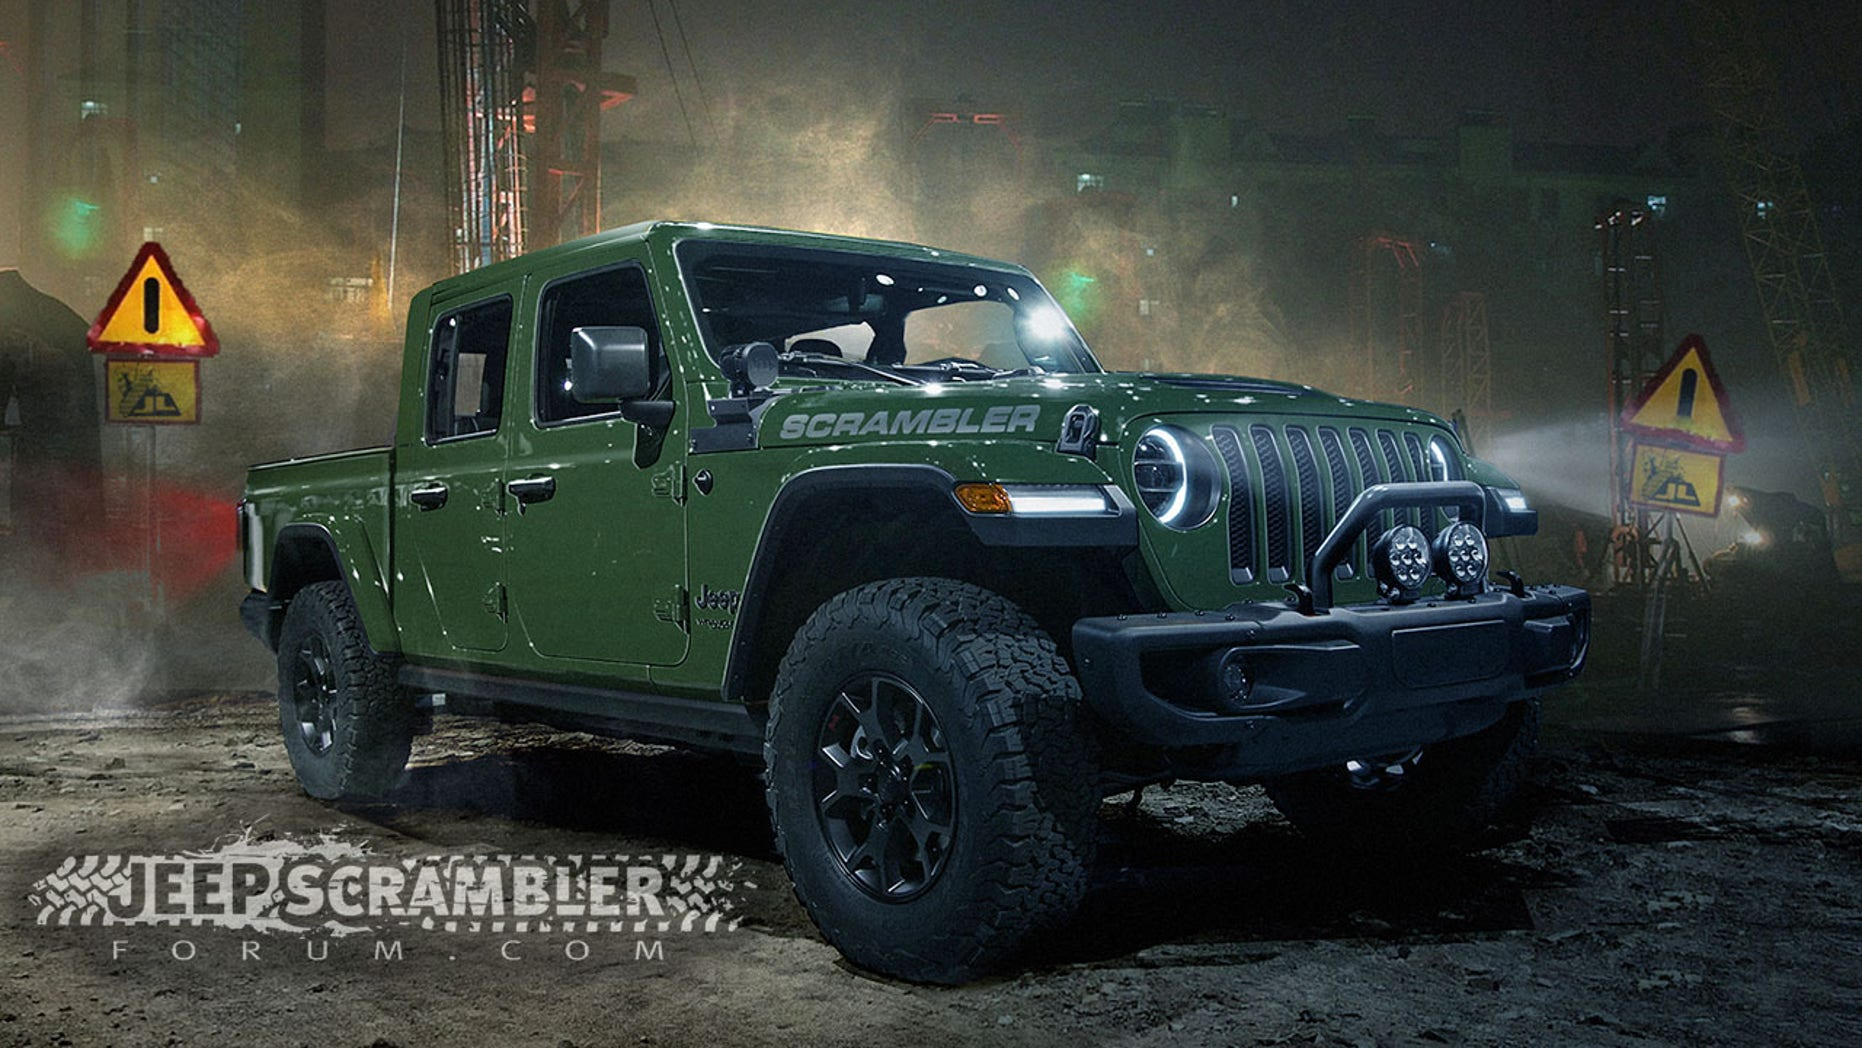 The Scrambler, as it's supposed to be called, is based on the four-door JL-generation Wrangler which debuted in November.